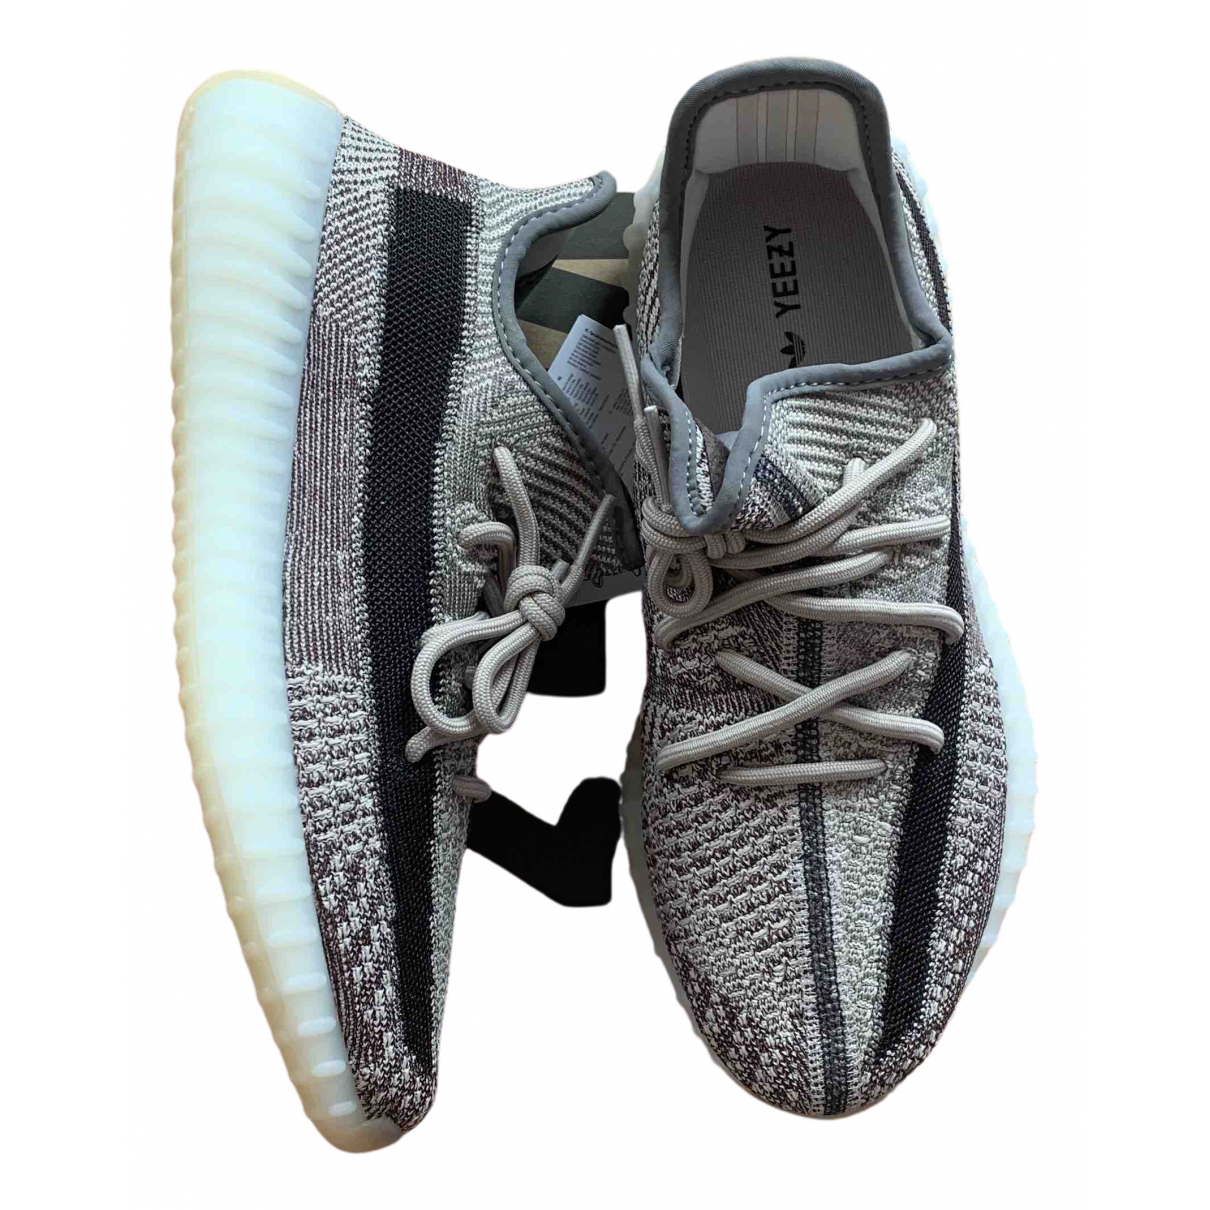 Yeezy X Adidas Boost 350 V2 Grey Cloth Trainers for Men 9.5 UK